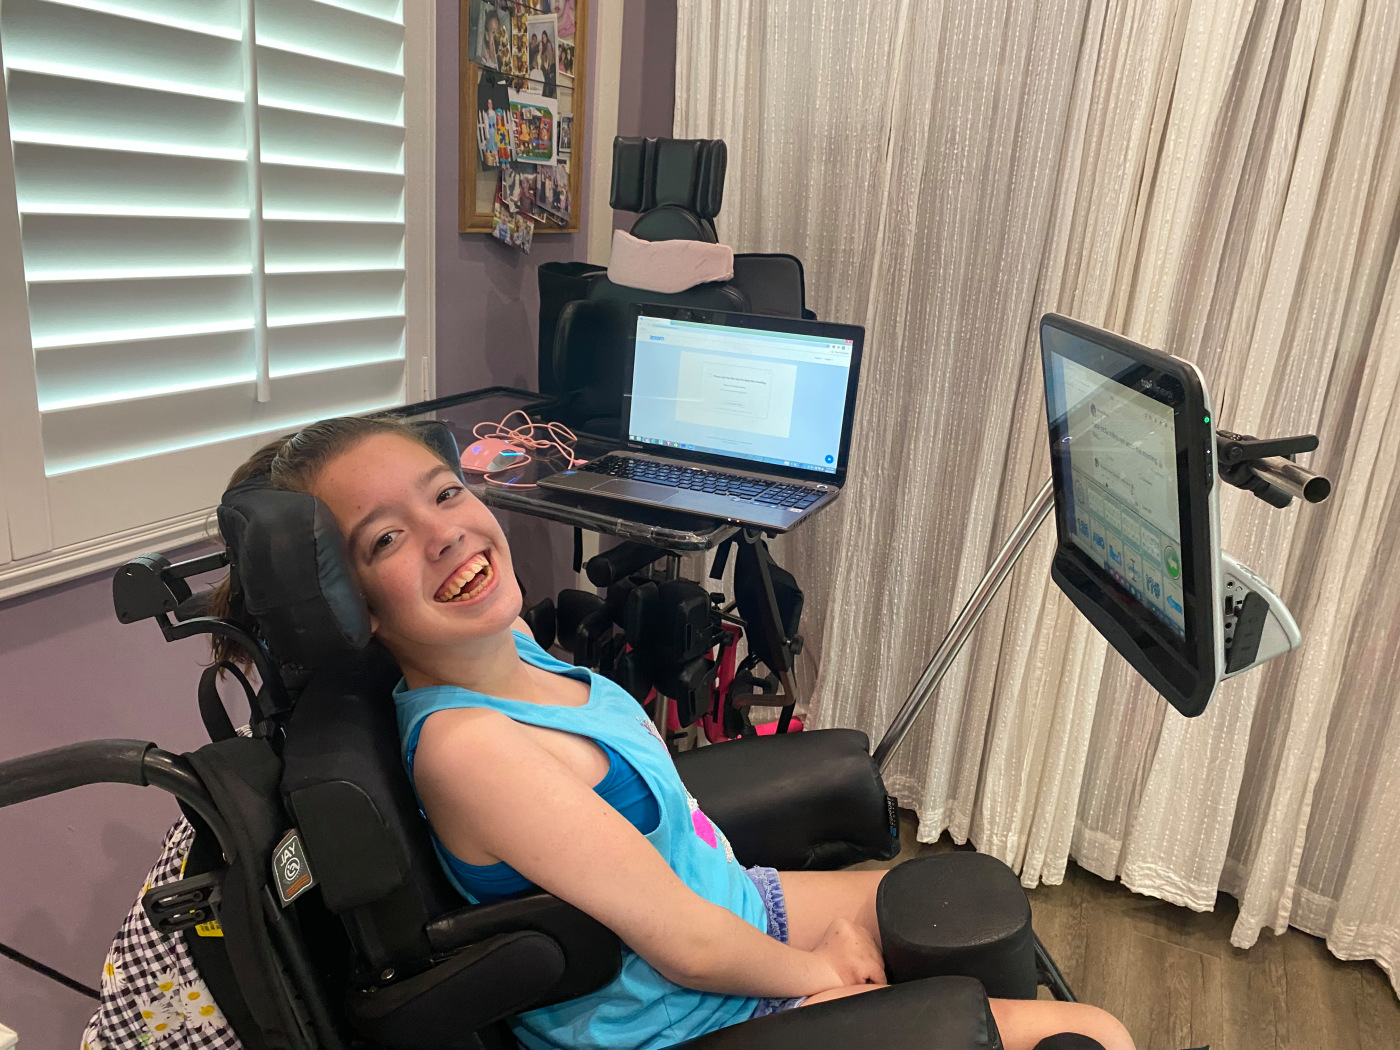 Student with cerebral palsy navigates rigors of distance learning, with help from mom, teachers